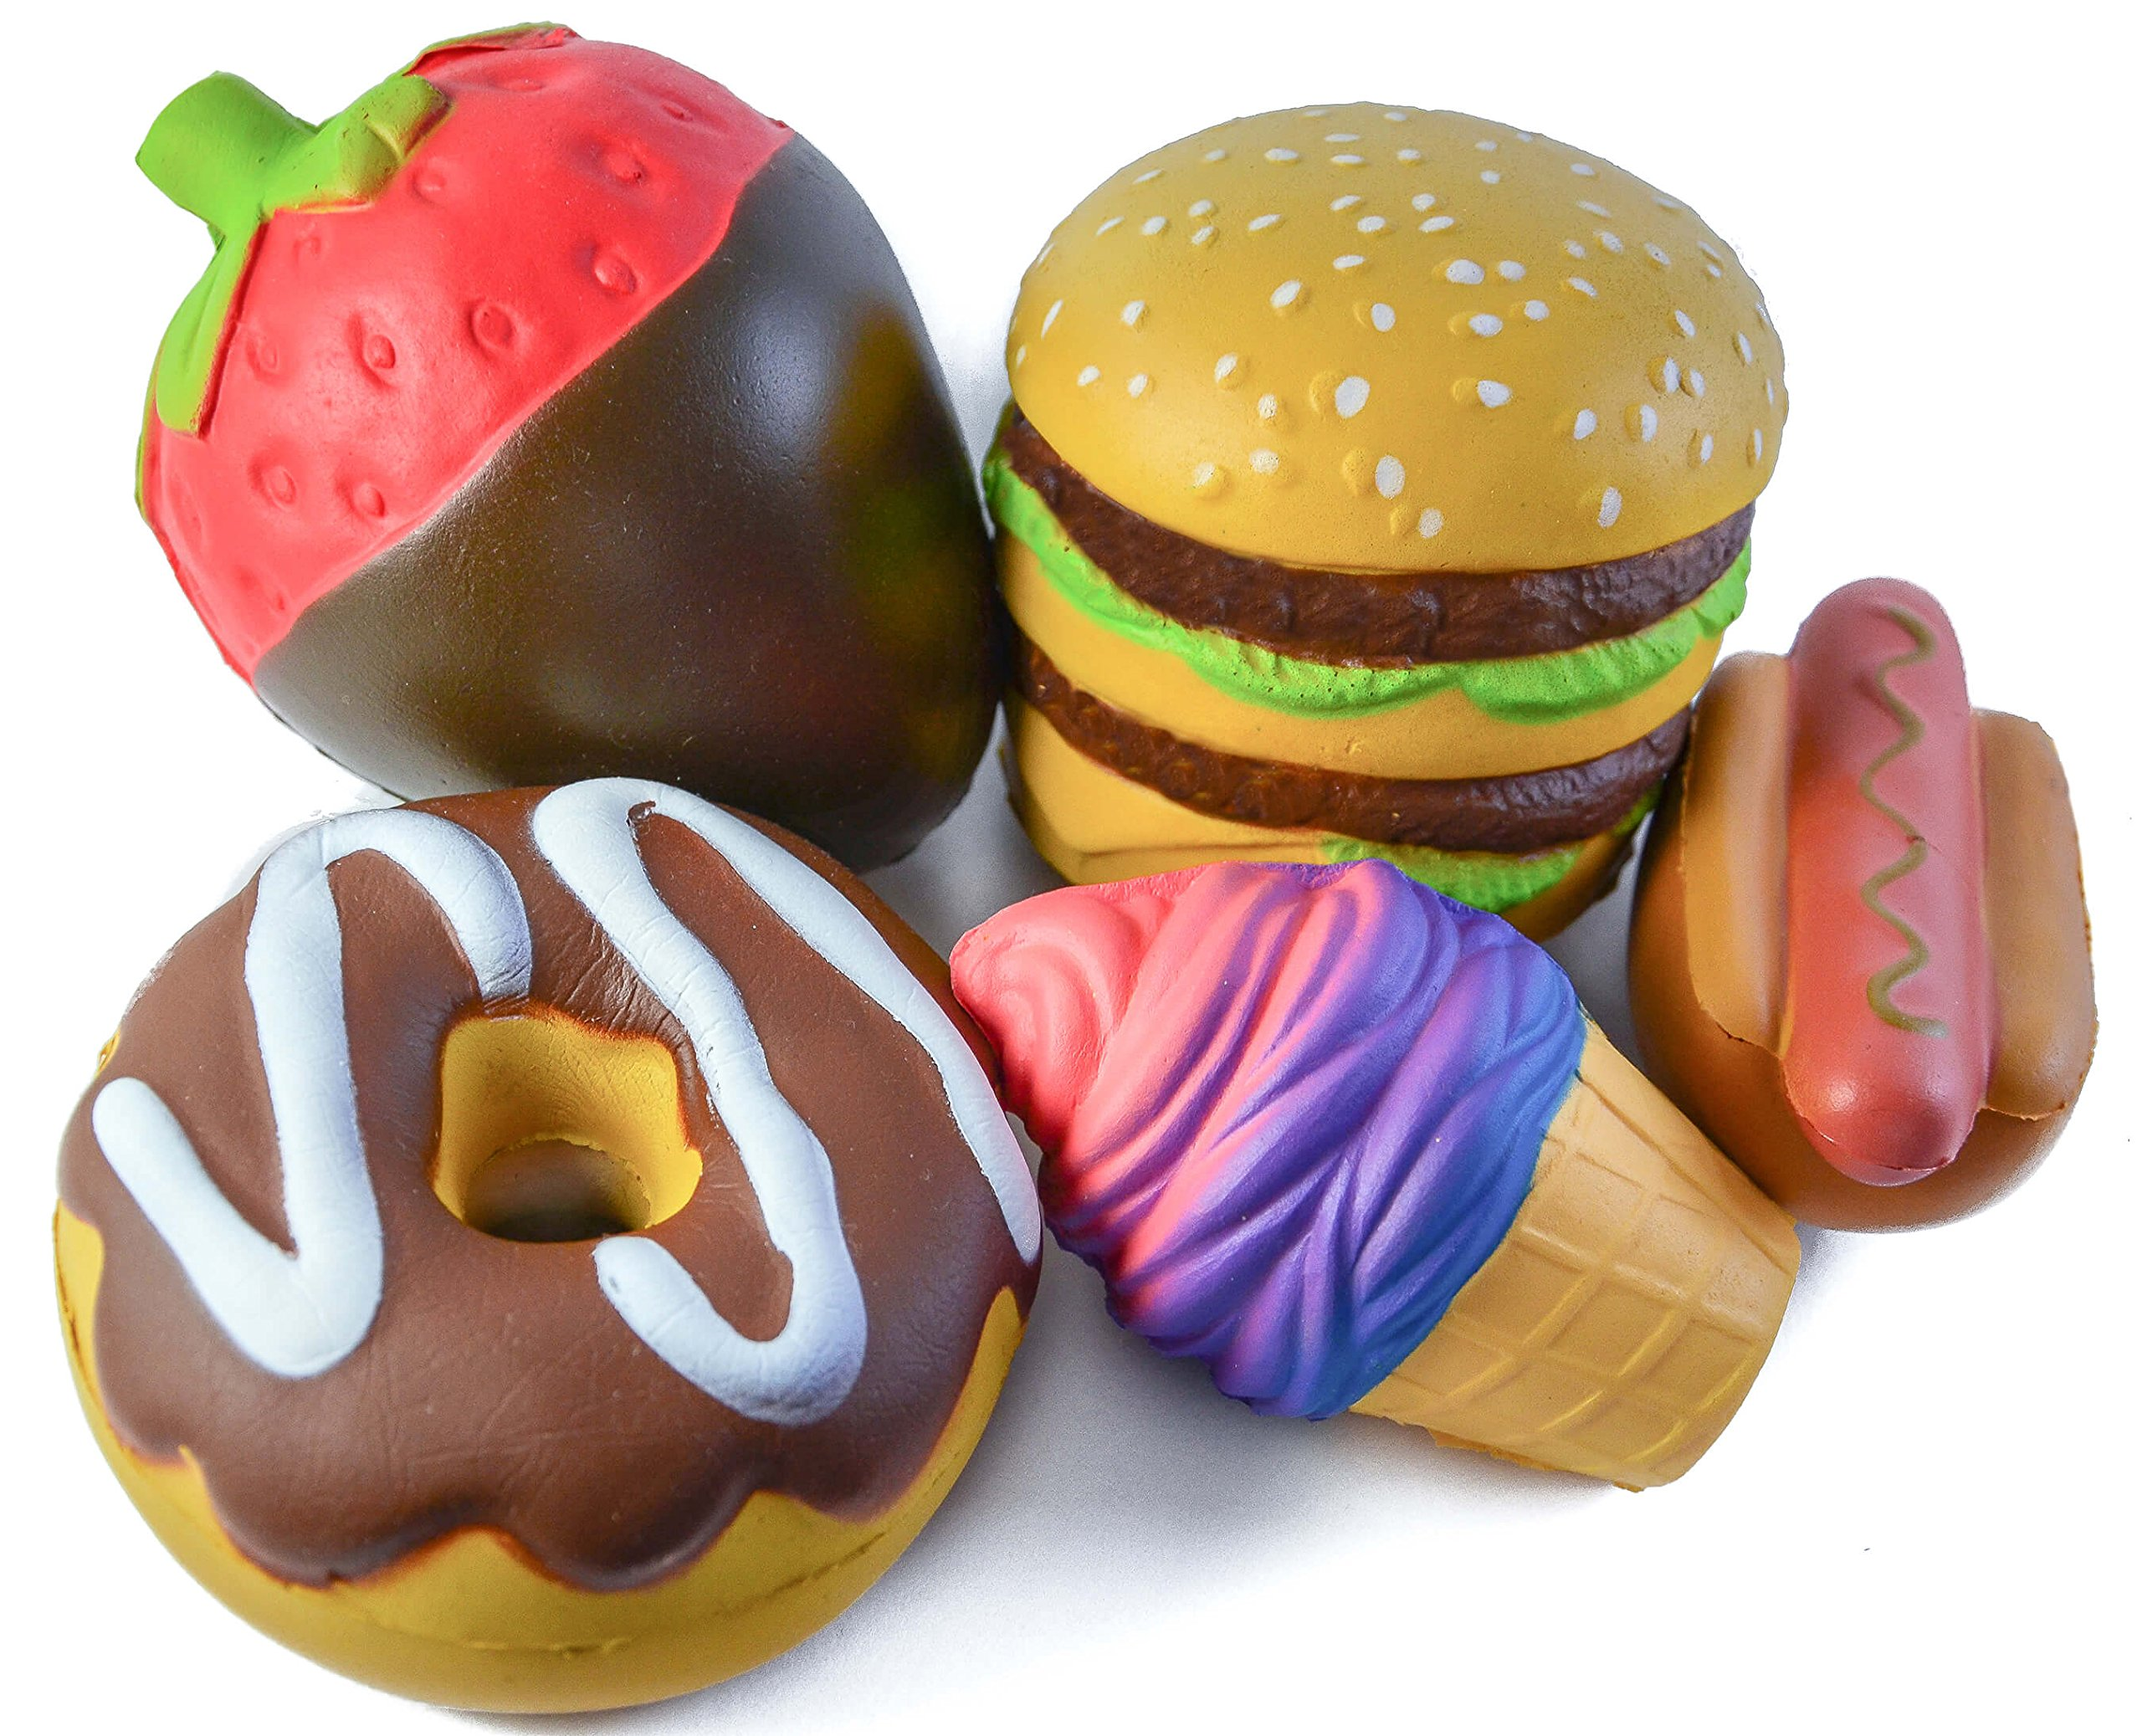 Angry-Wolf Jumbo Squishies 5 Pack | Squishy Ultra Soft & Slow Rising Kawaii Toys | Ice Cream, Strawberry, Donut, Hot Dog, Hamburger | Stress Relief Toy Set | Squeeze Scented Gift For Kids, Adults